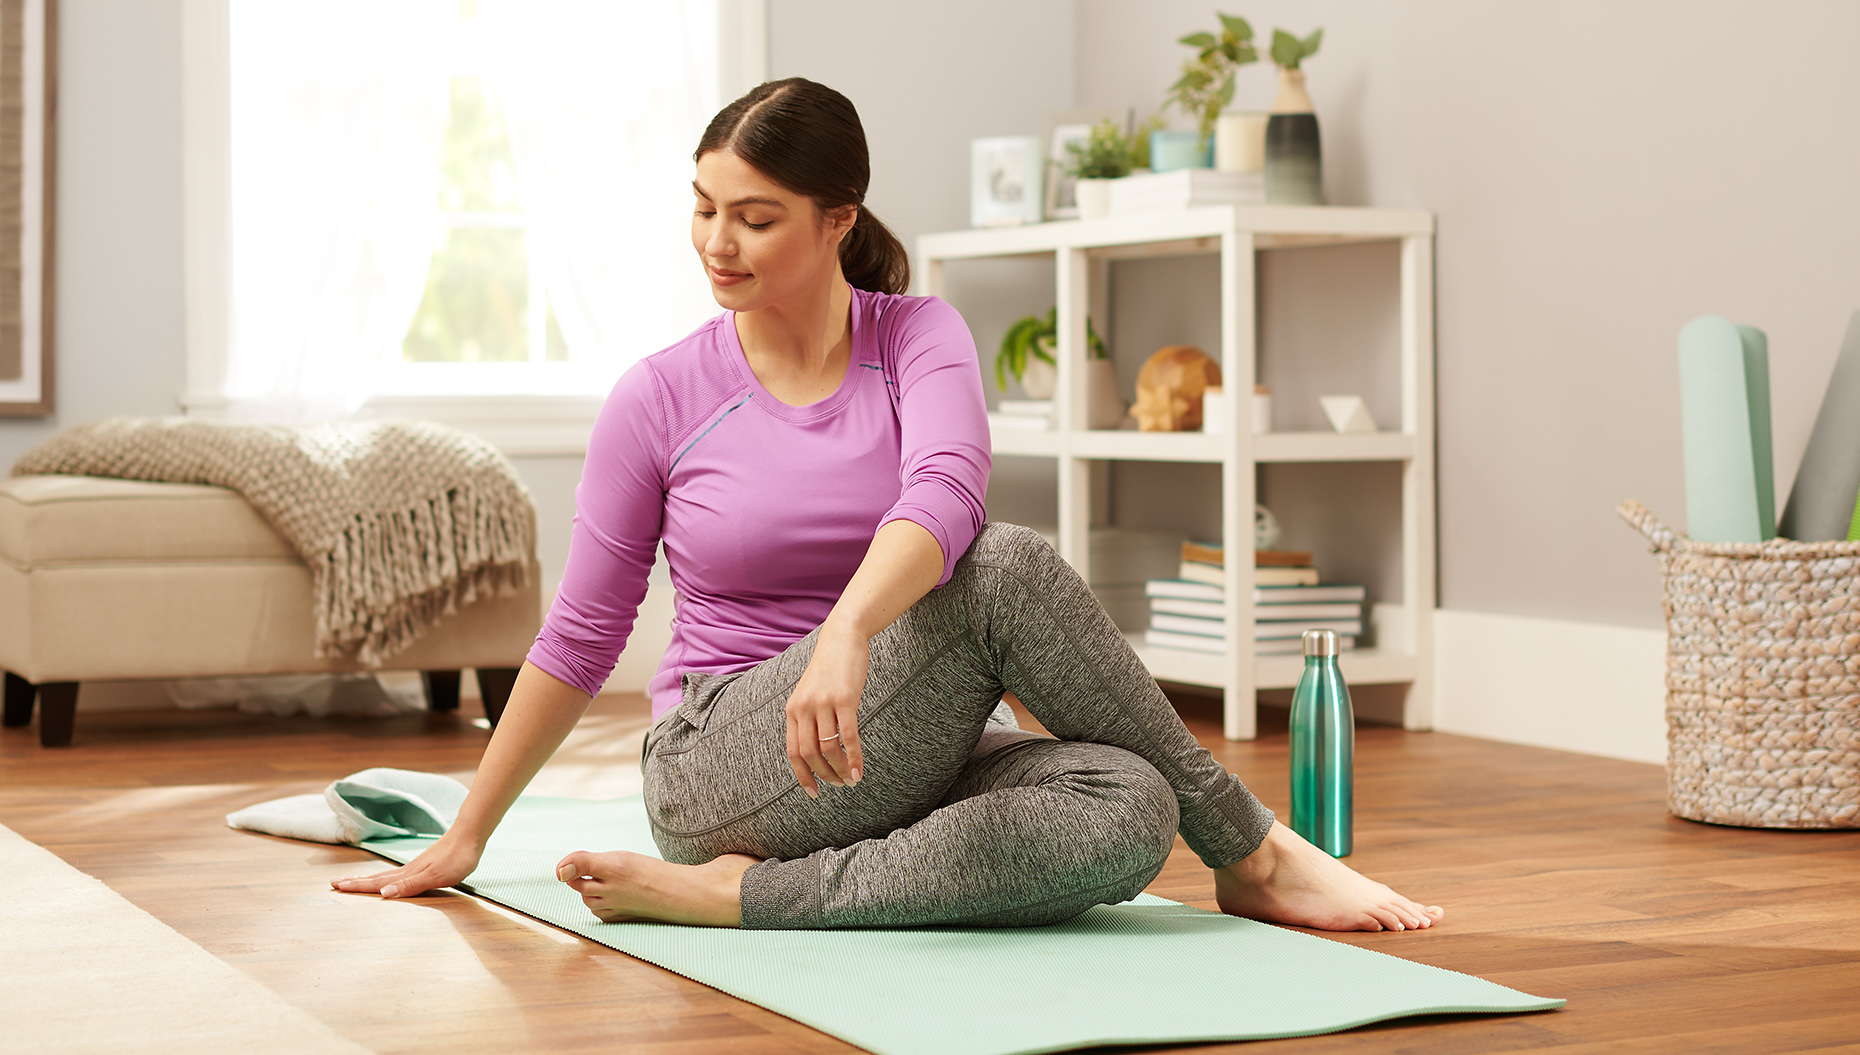 lifestyle_20191113_Walgreens_Shot_17_Yoga_1193